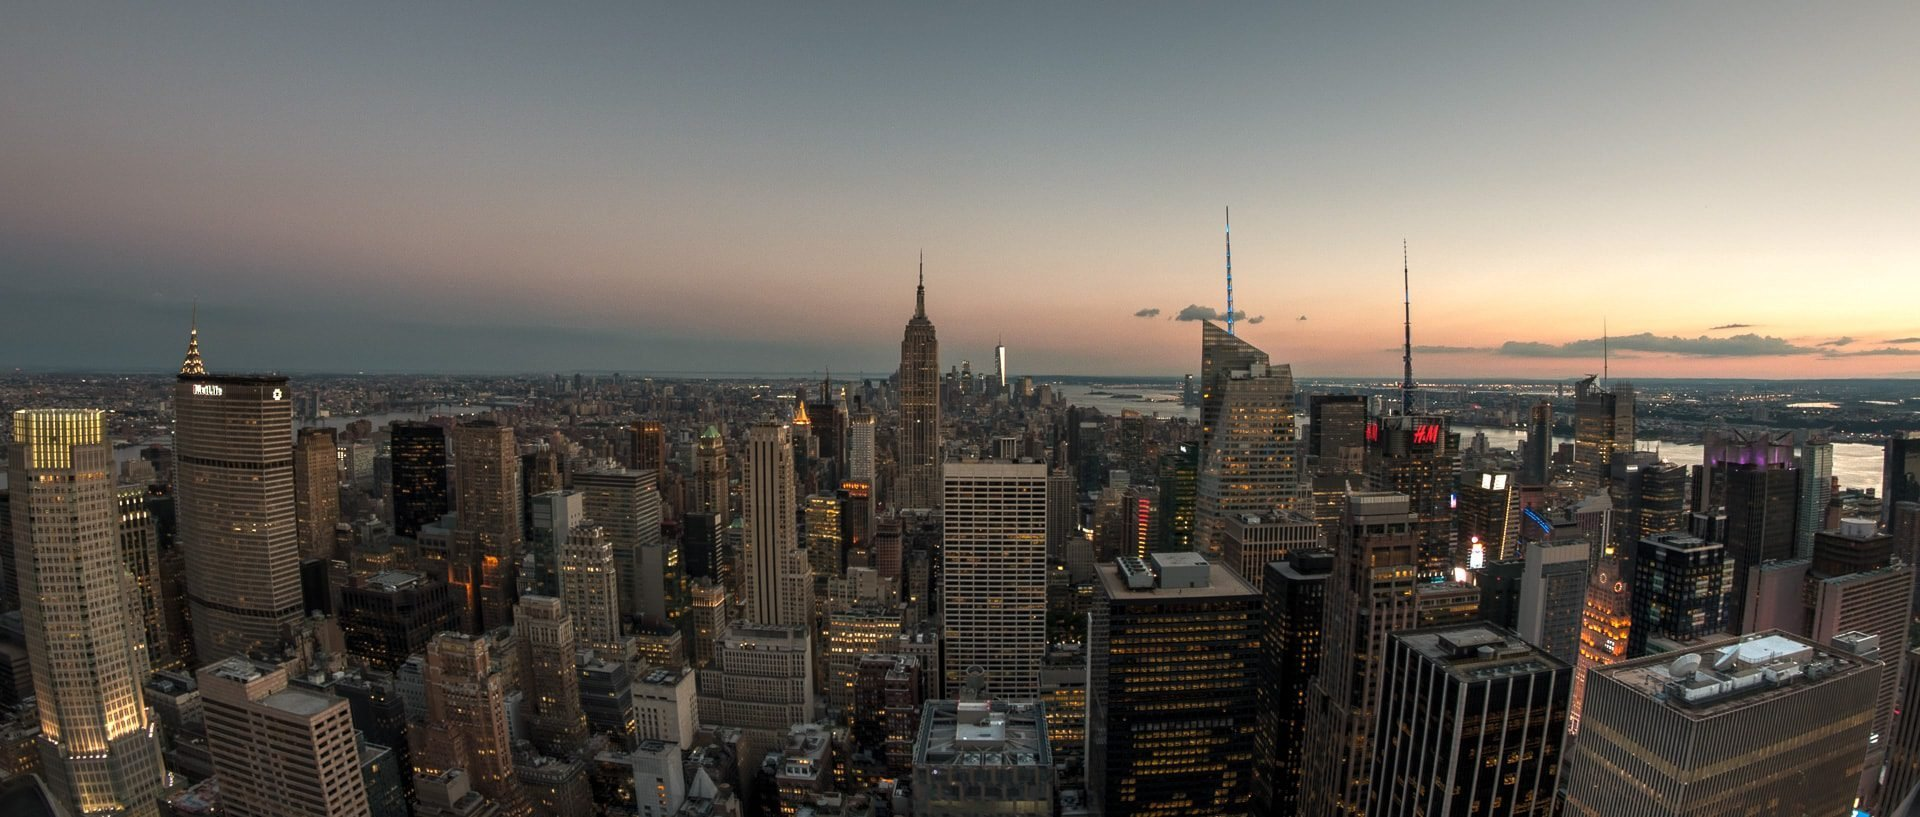 New York City – Top of the Rock